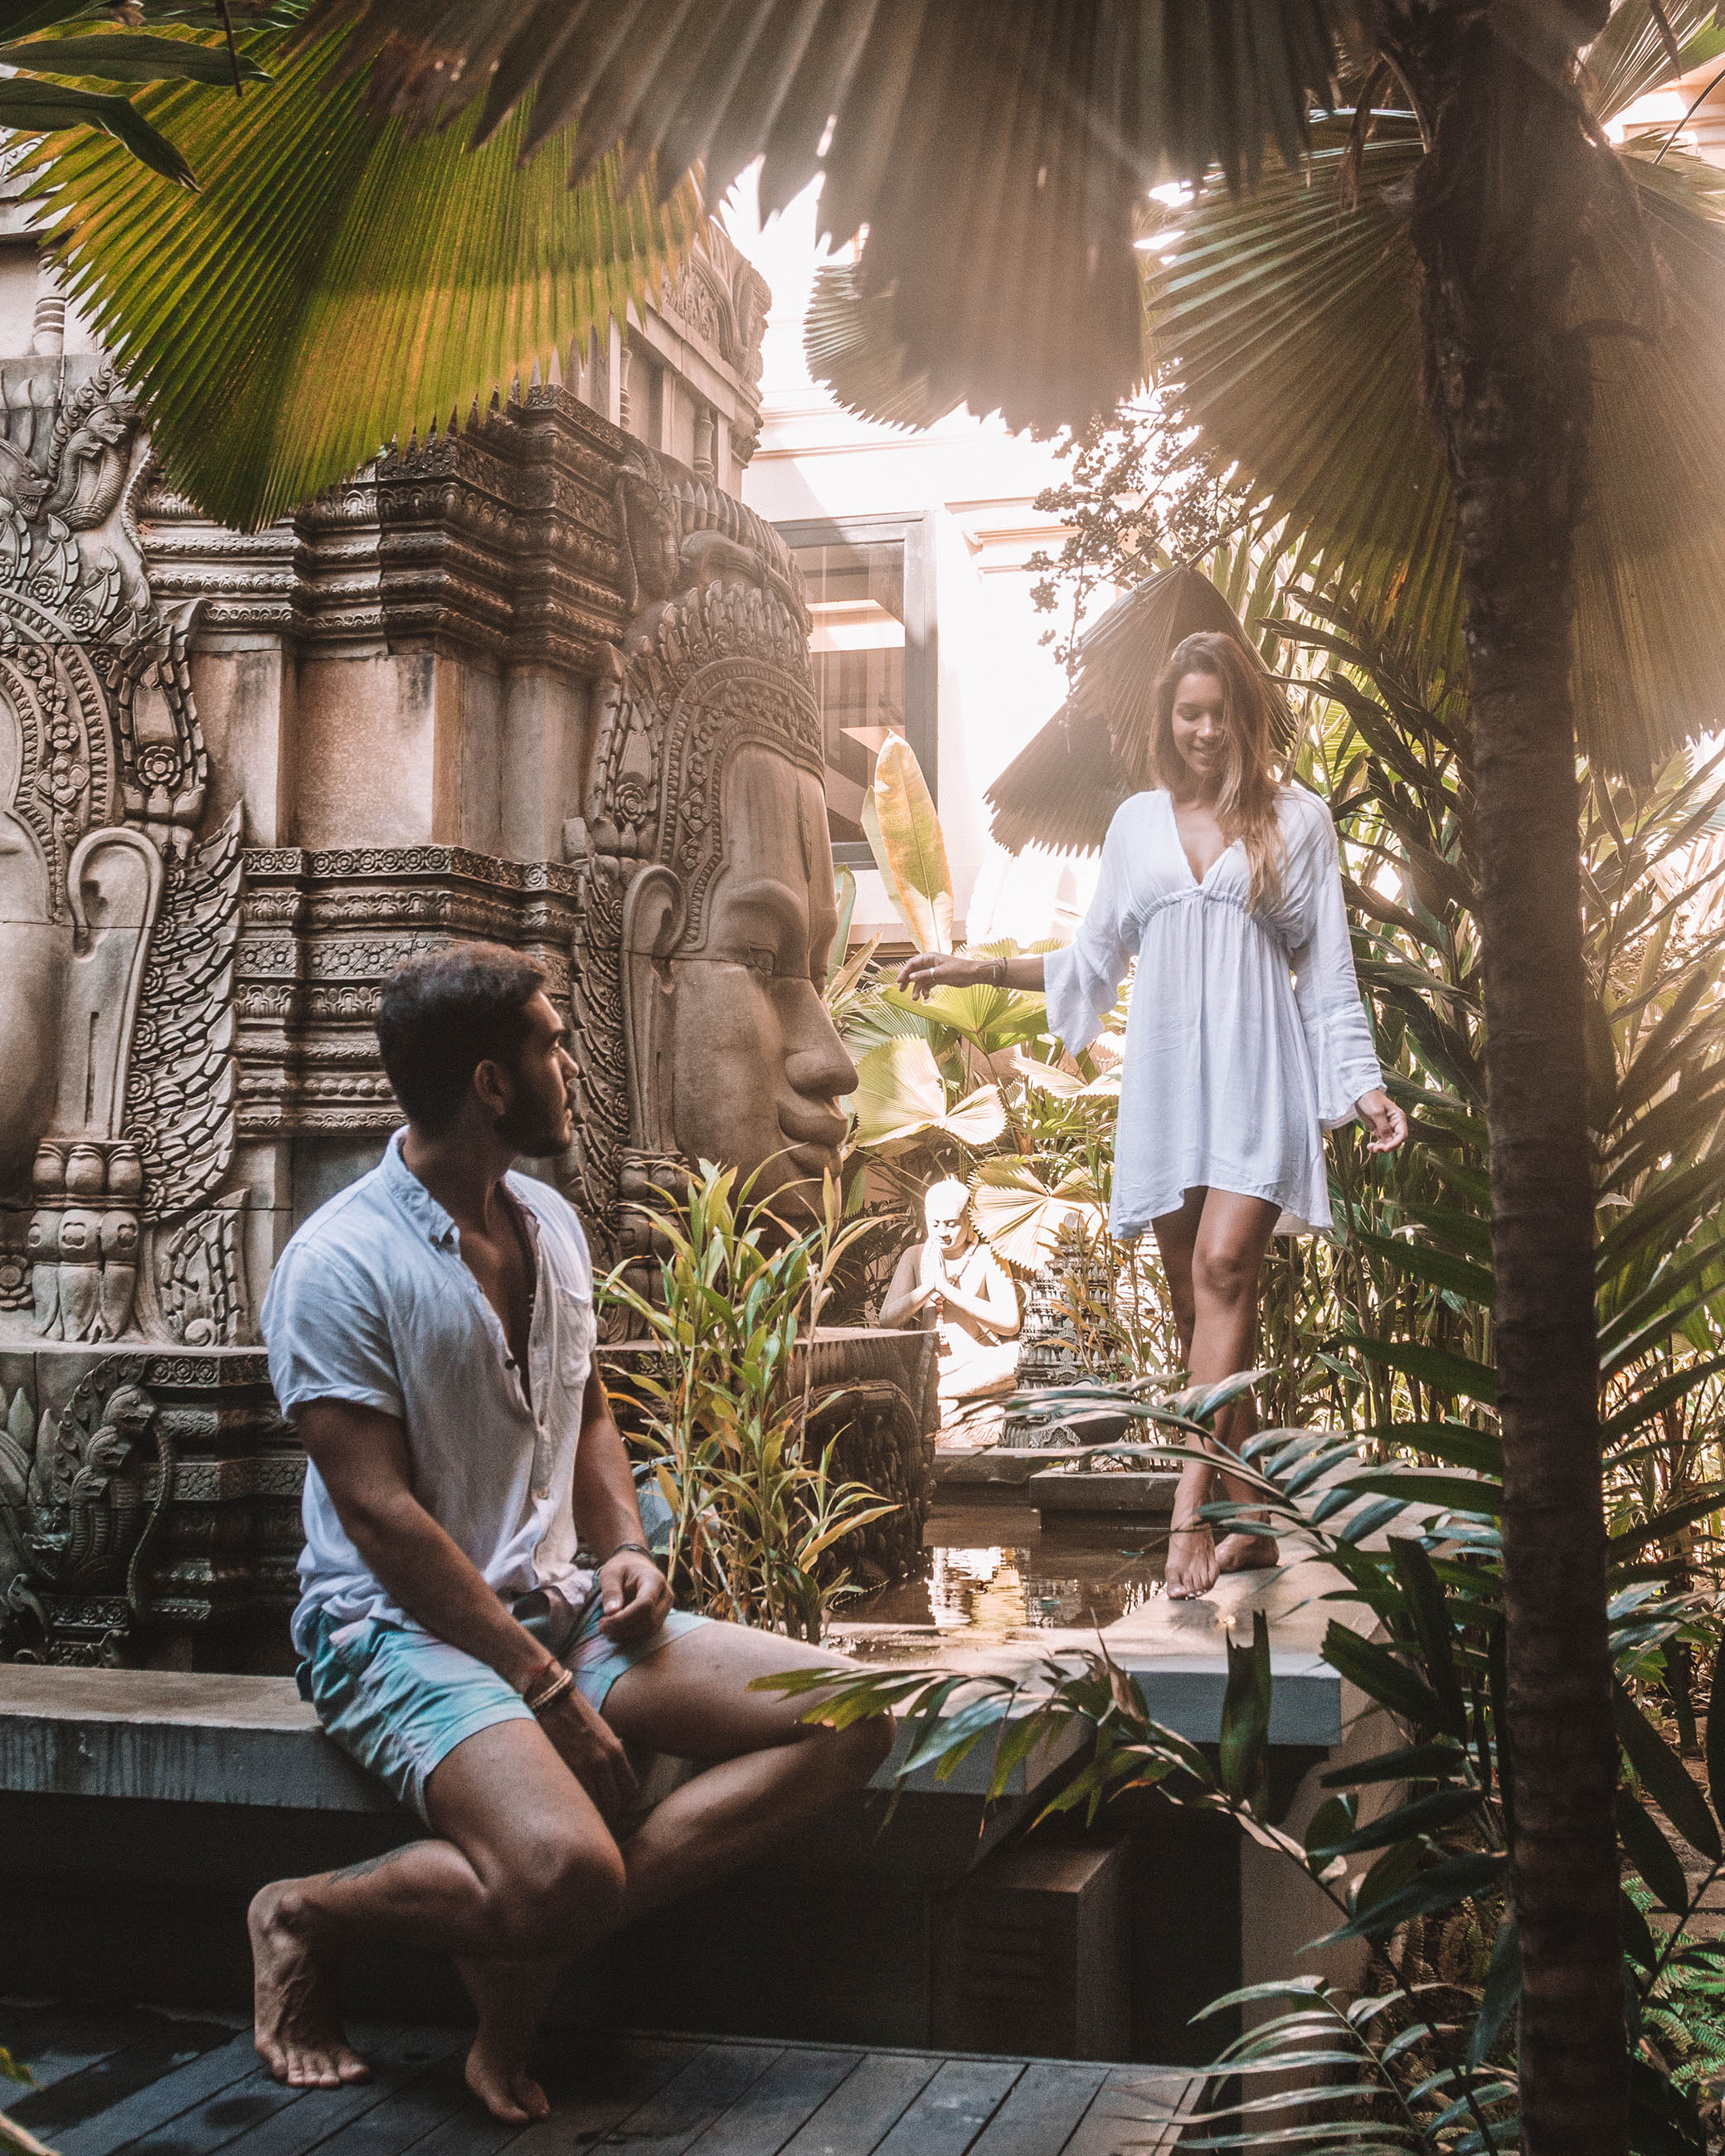 Cambodia Siem Reap Angkor Miracle Resort and Spa Buddha garden nature love peace serenity find your light outdoors khmer culture couple love travel mindfulness